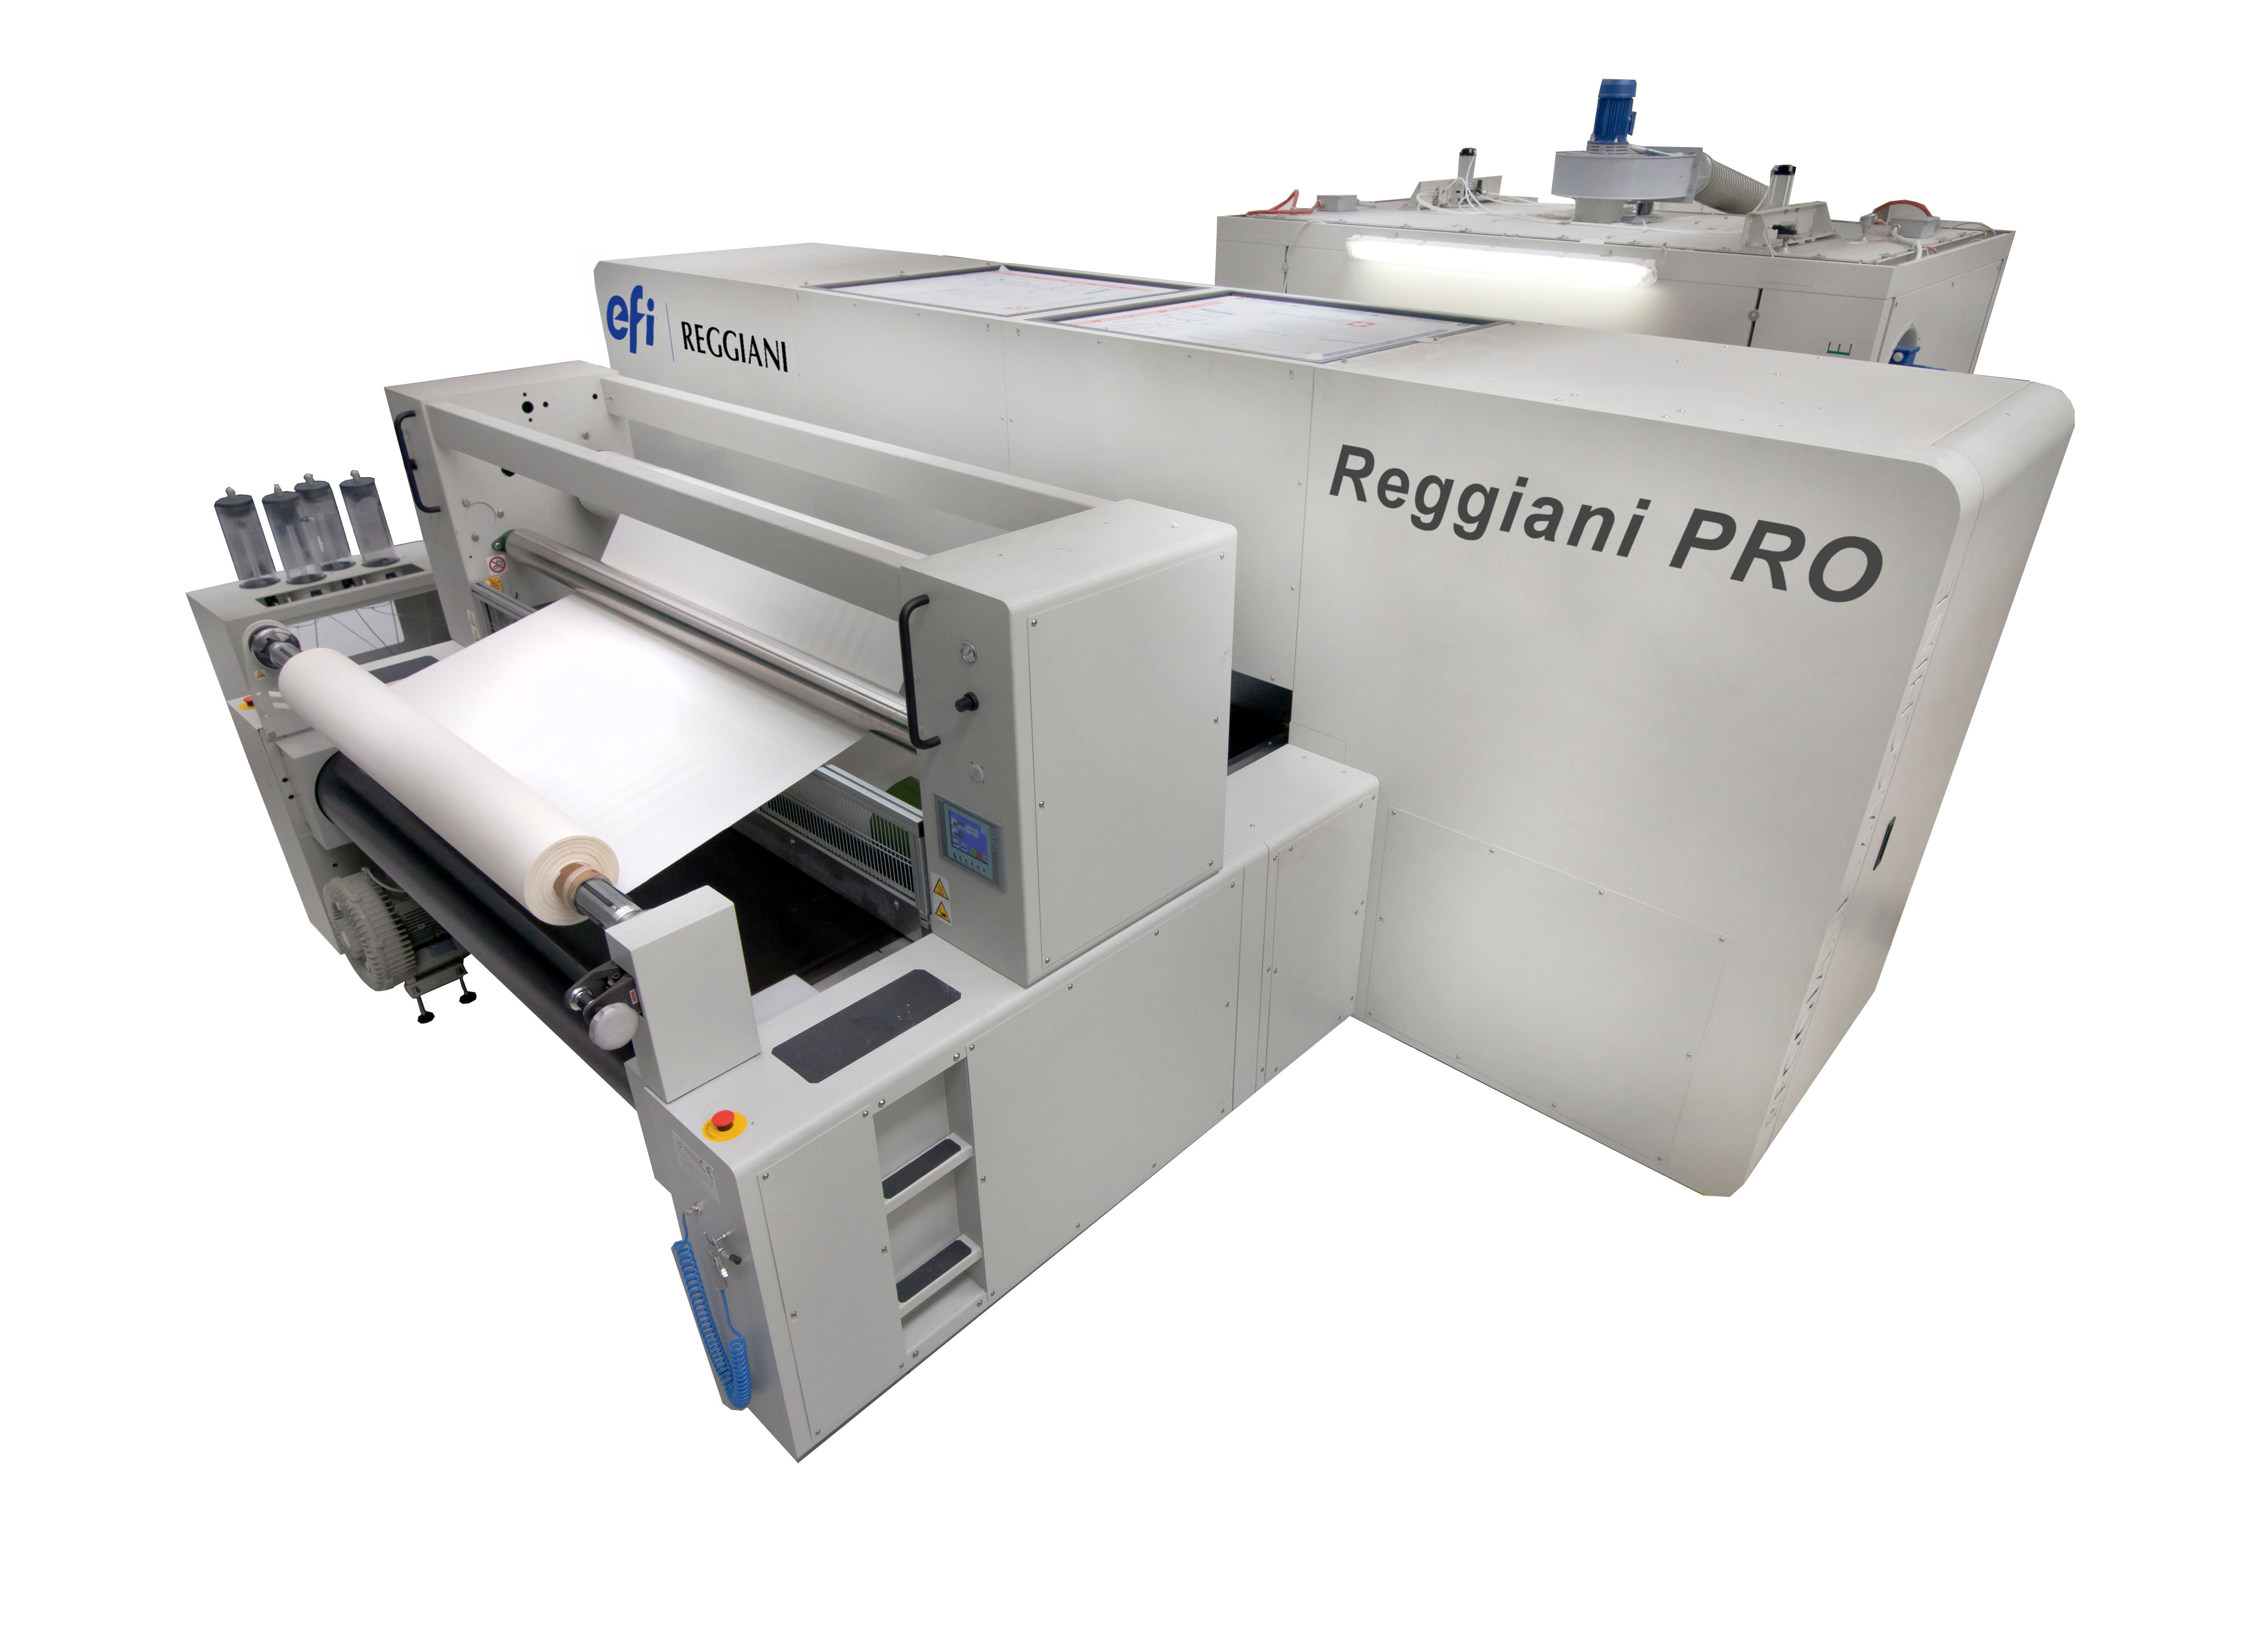 In 2015, EFI entered the textile printing marketing with the acquisition of Italian digital textile company Reggiani Macchine. © EFI